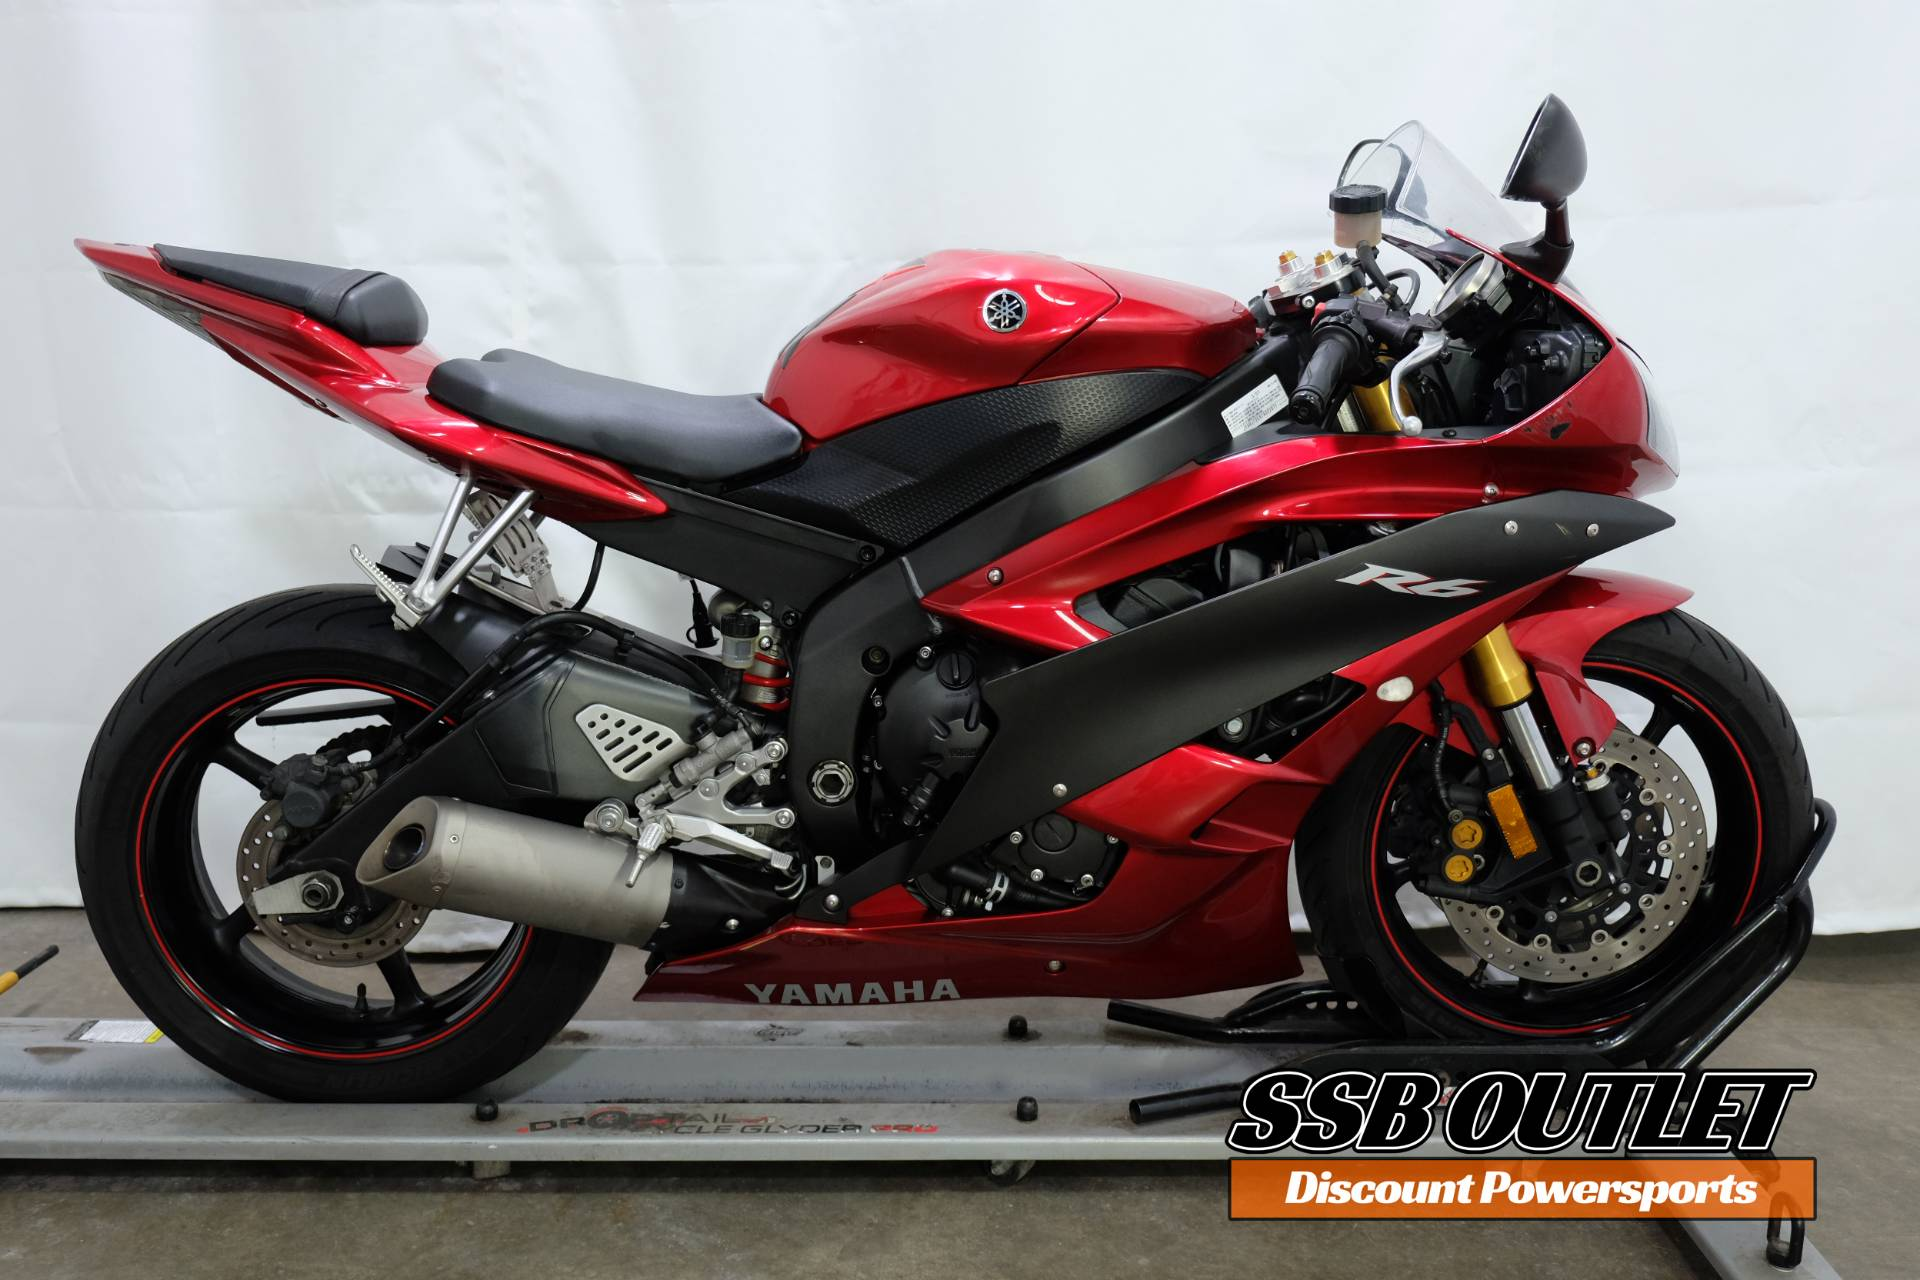 2007 Yamaha YZF-R6 for sale 146943